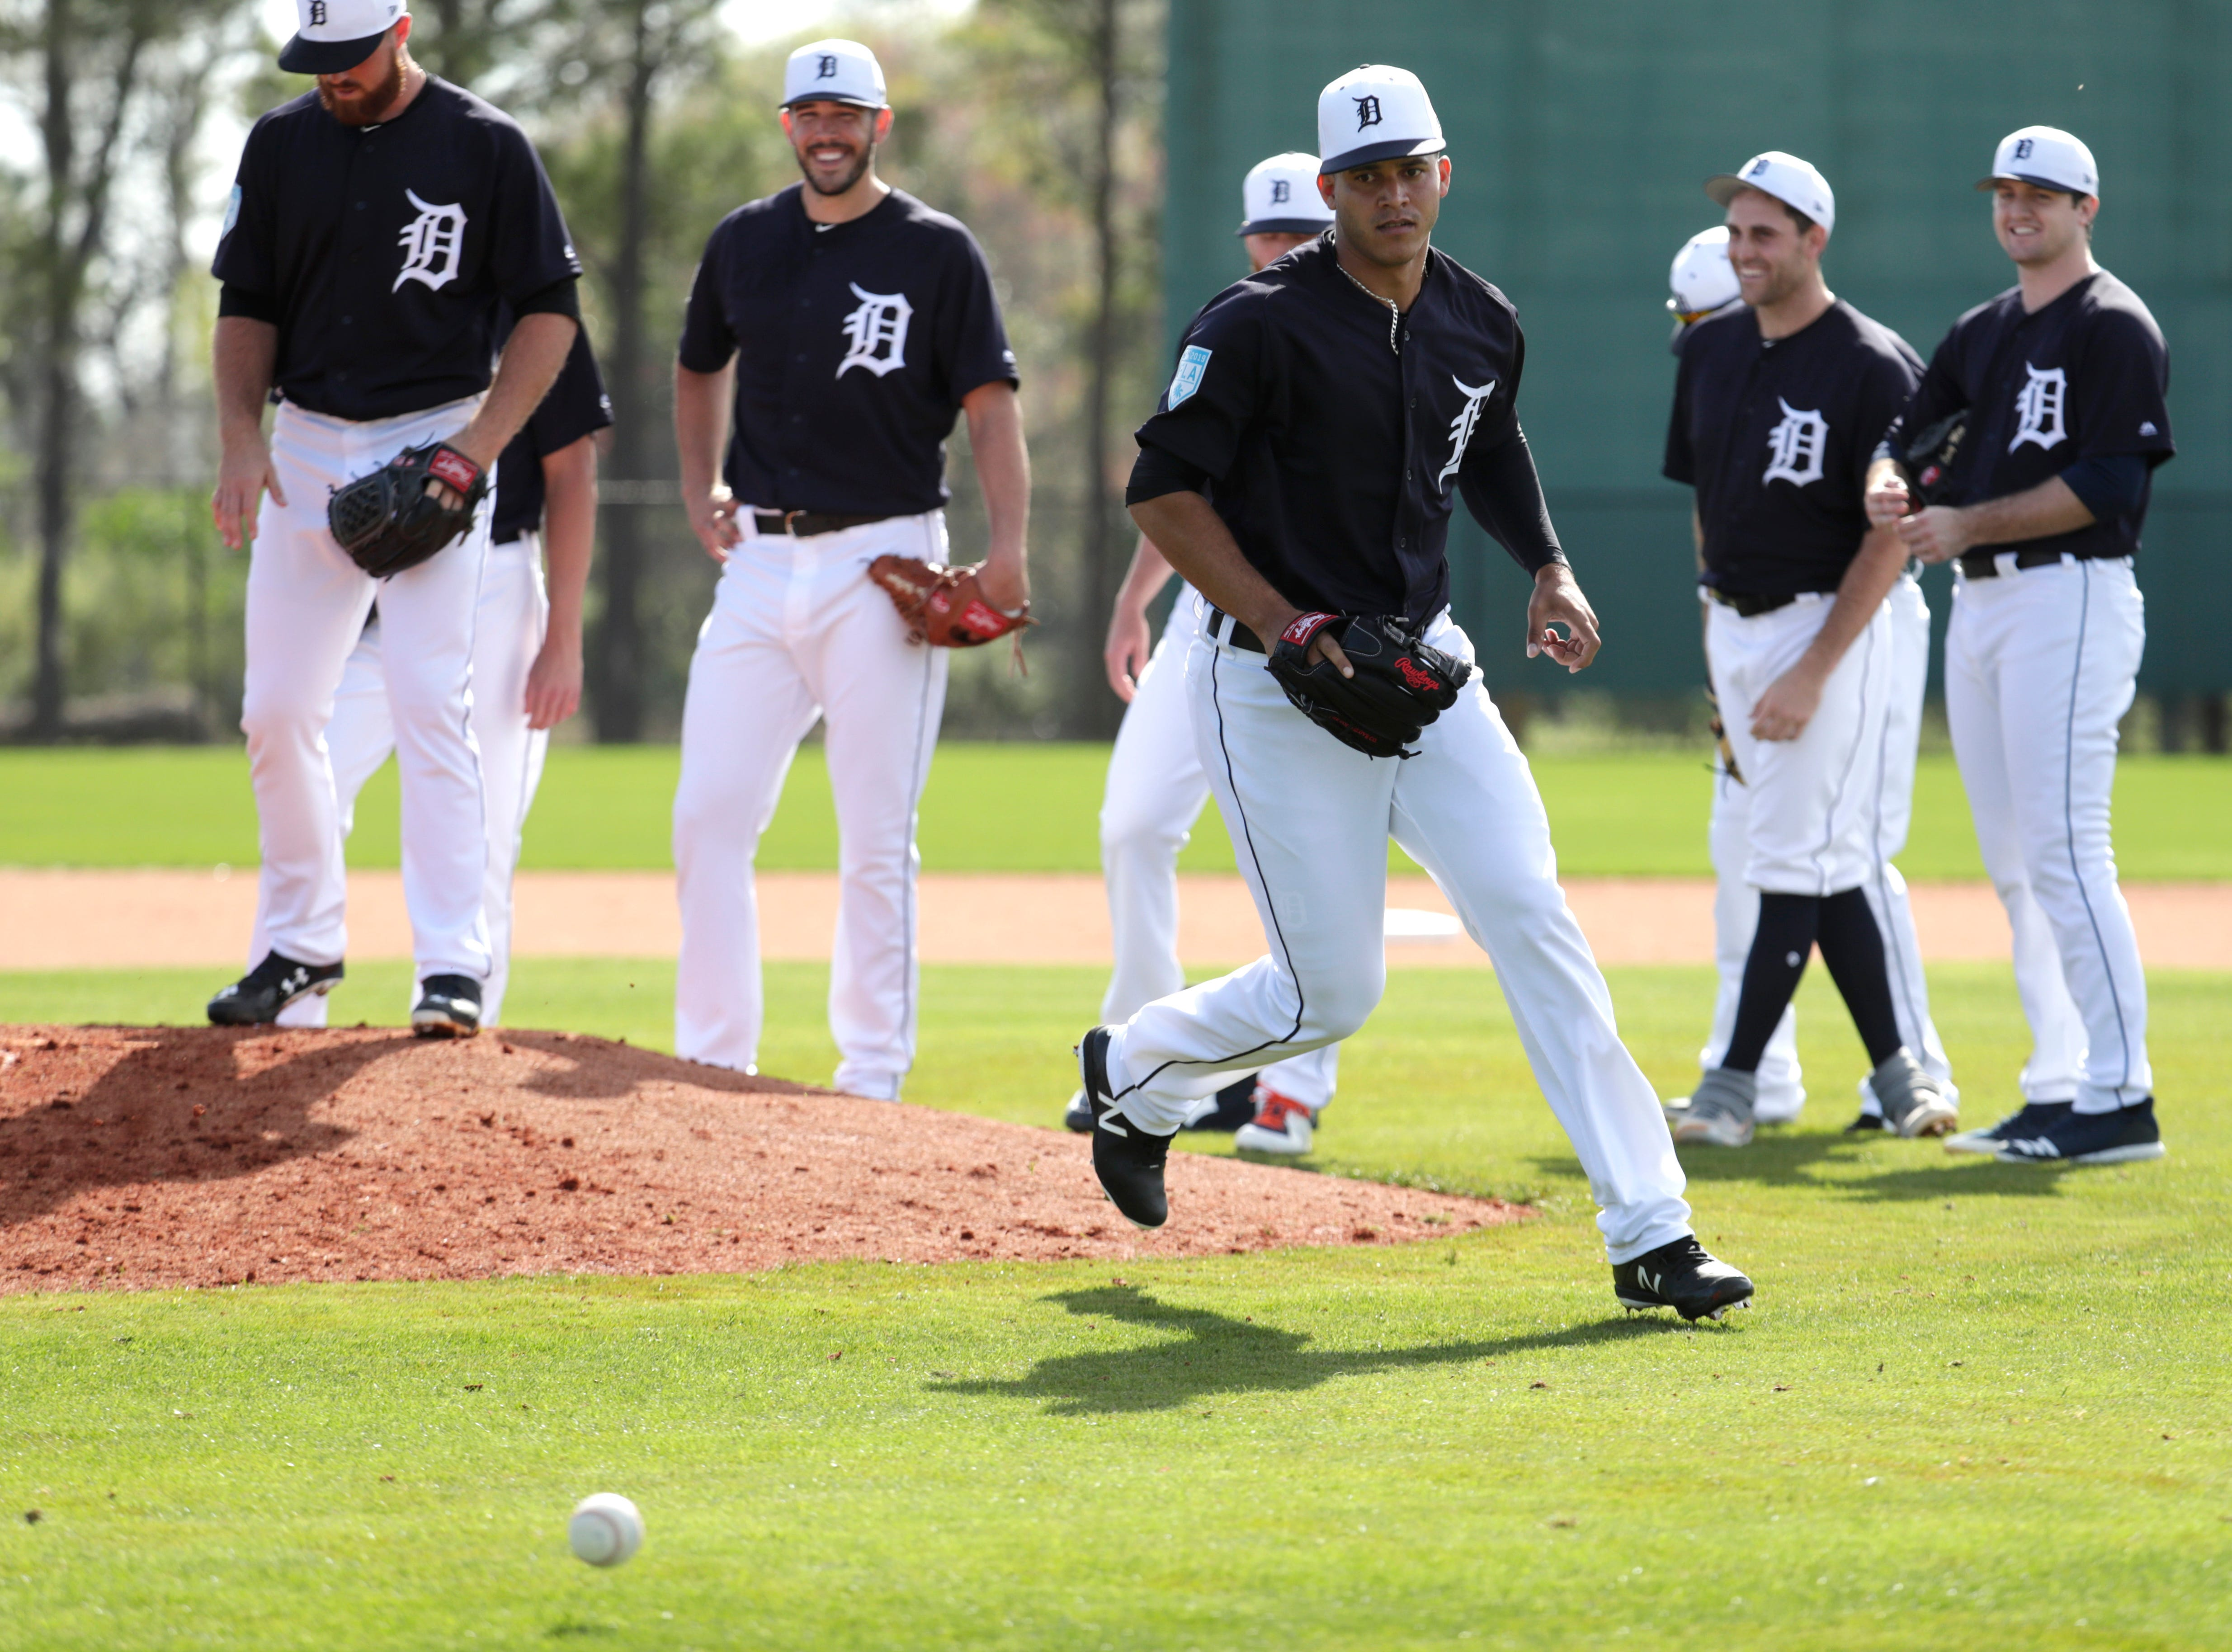 Detroit Tigers relief pitcher Jose Fernandez does drills at the Detroit Tigers spring training baseball facility, Friday, Feb. 15, 2019, in Lakeland, Fla.